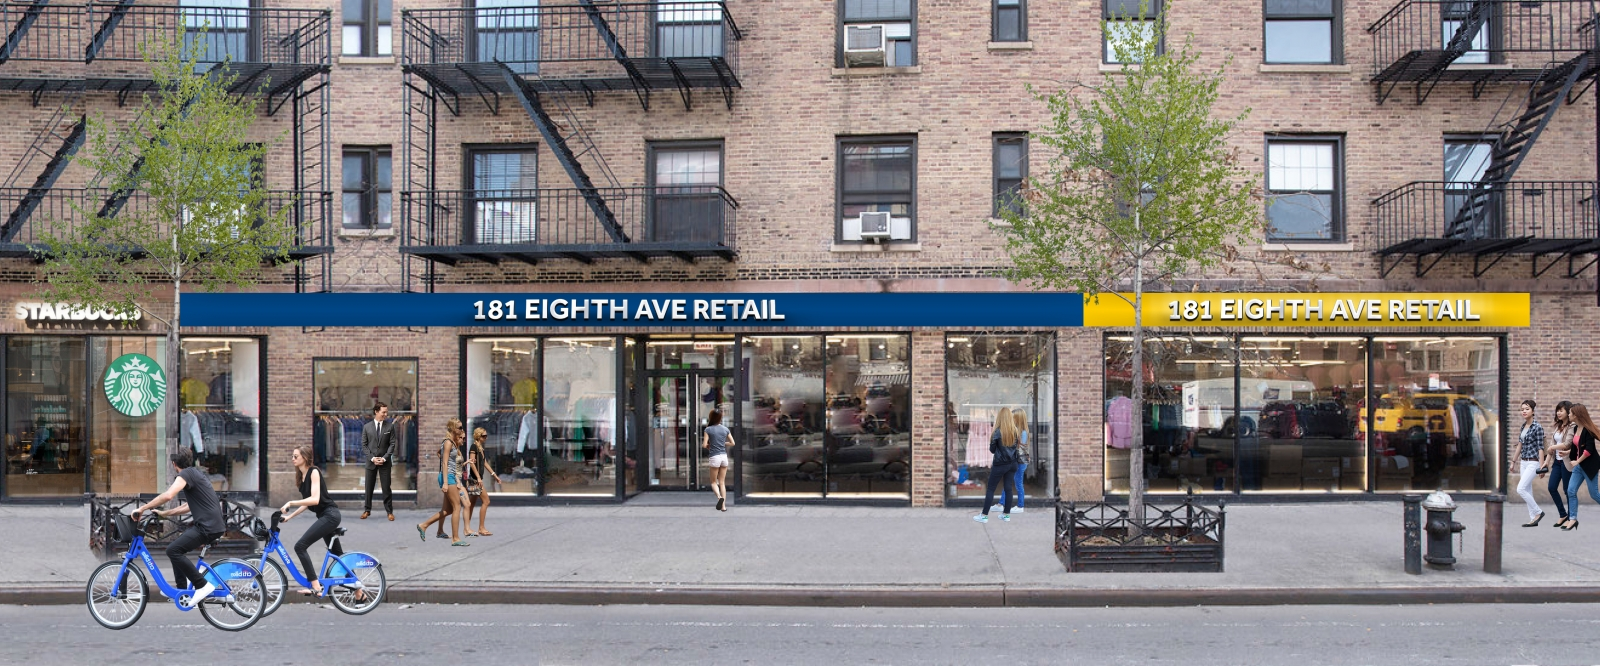 181 8th Ave, New York, NY 10011, USA